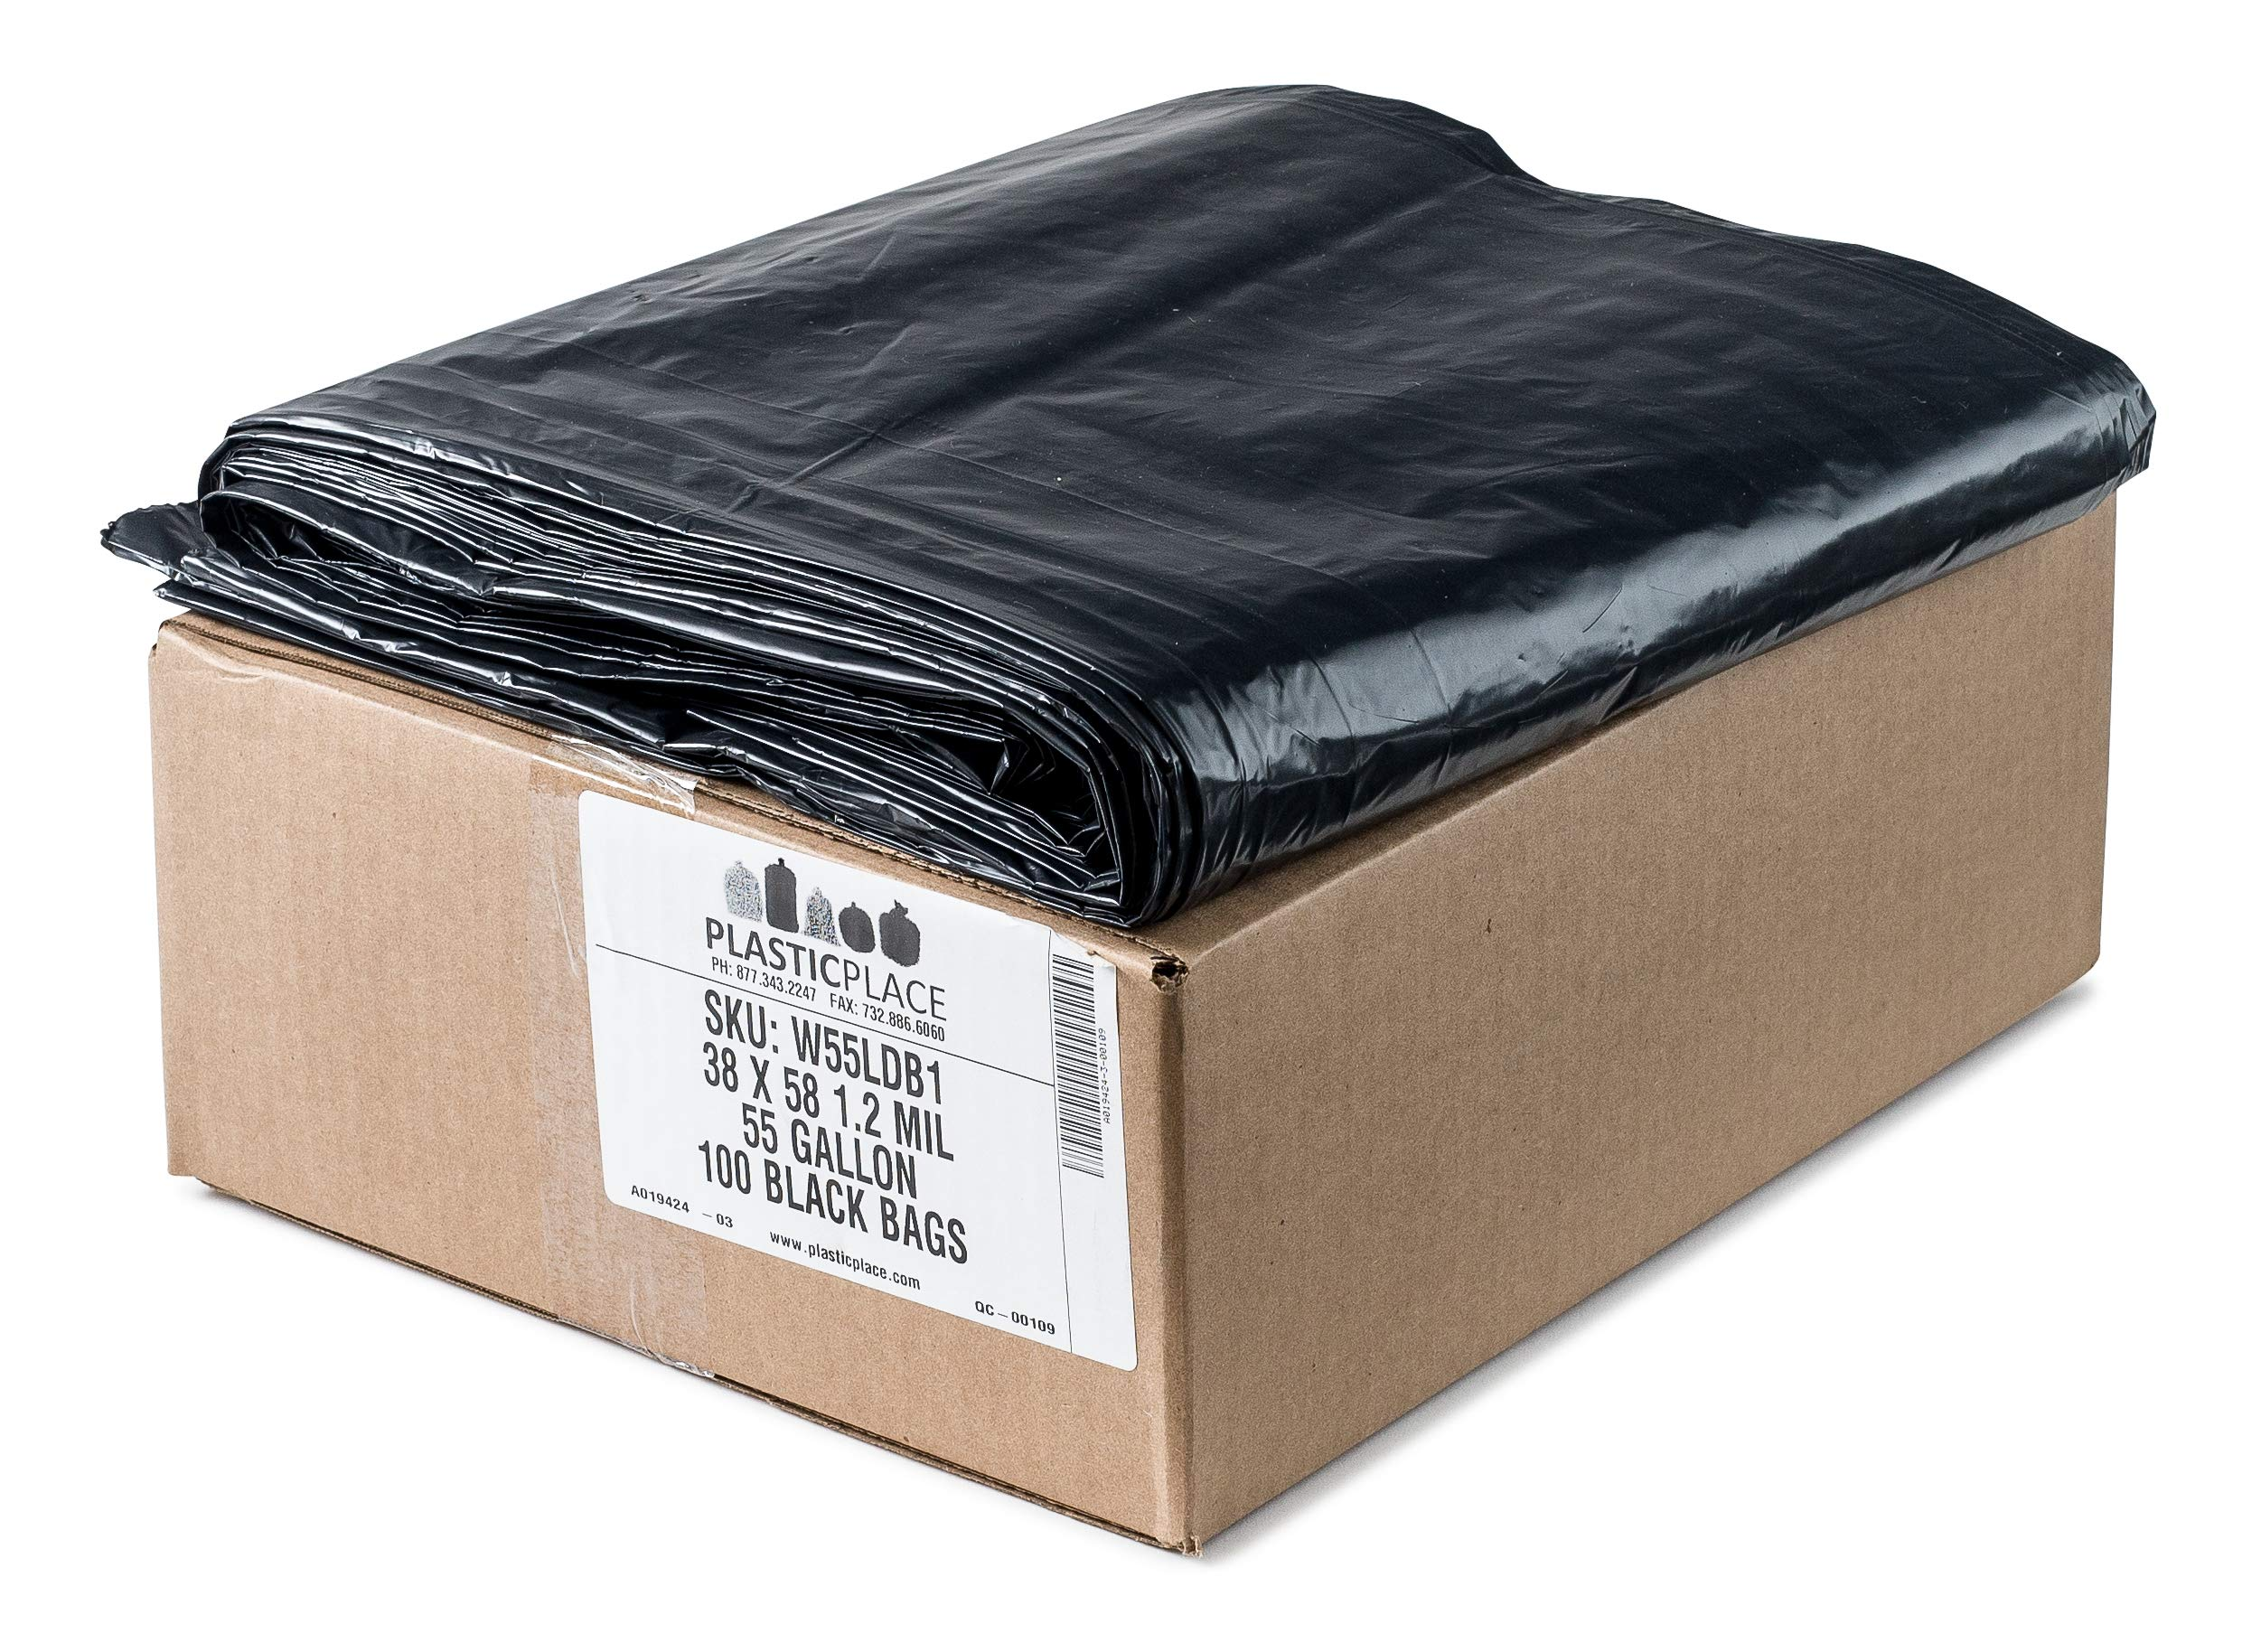 Plasticplace 55-60 Gallon Trash Bags │ 1.2 Mil │ Black Heavy Duty Garbage Can Liners │ 38'' x 58'' (100Count) by Plasticplace